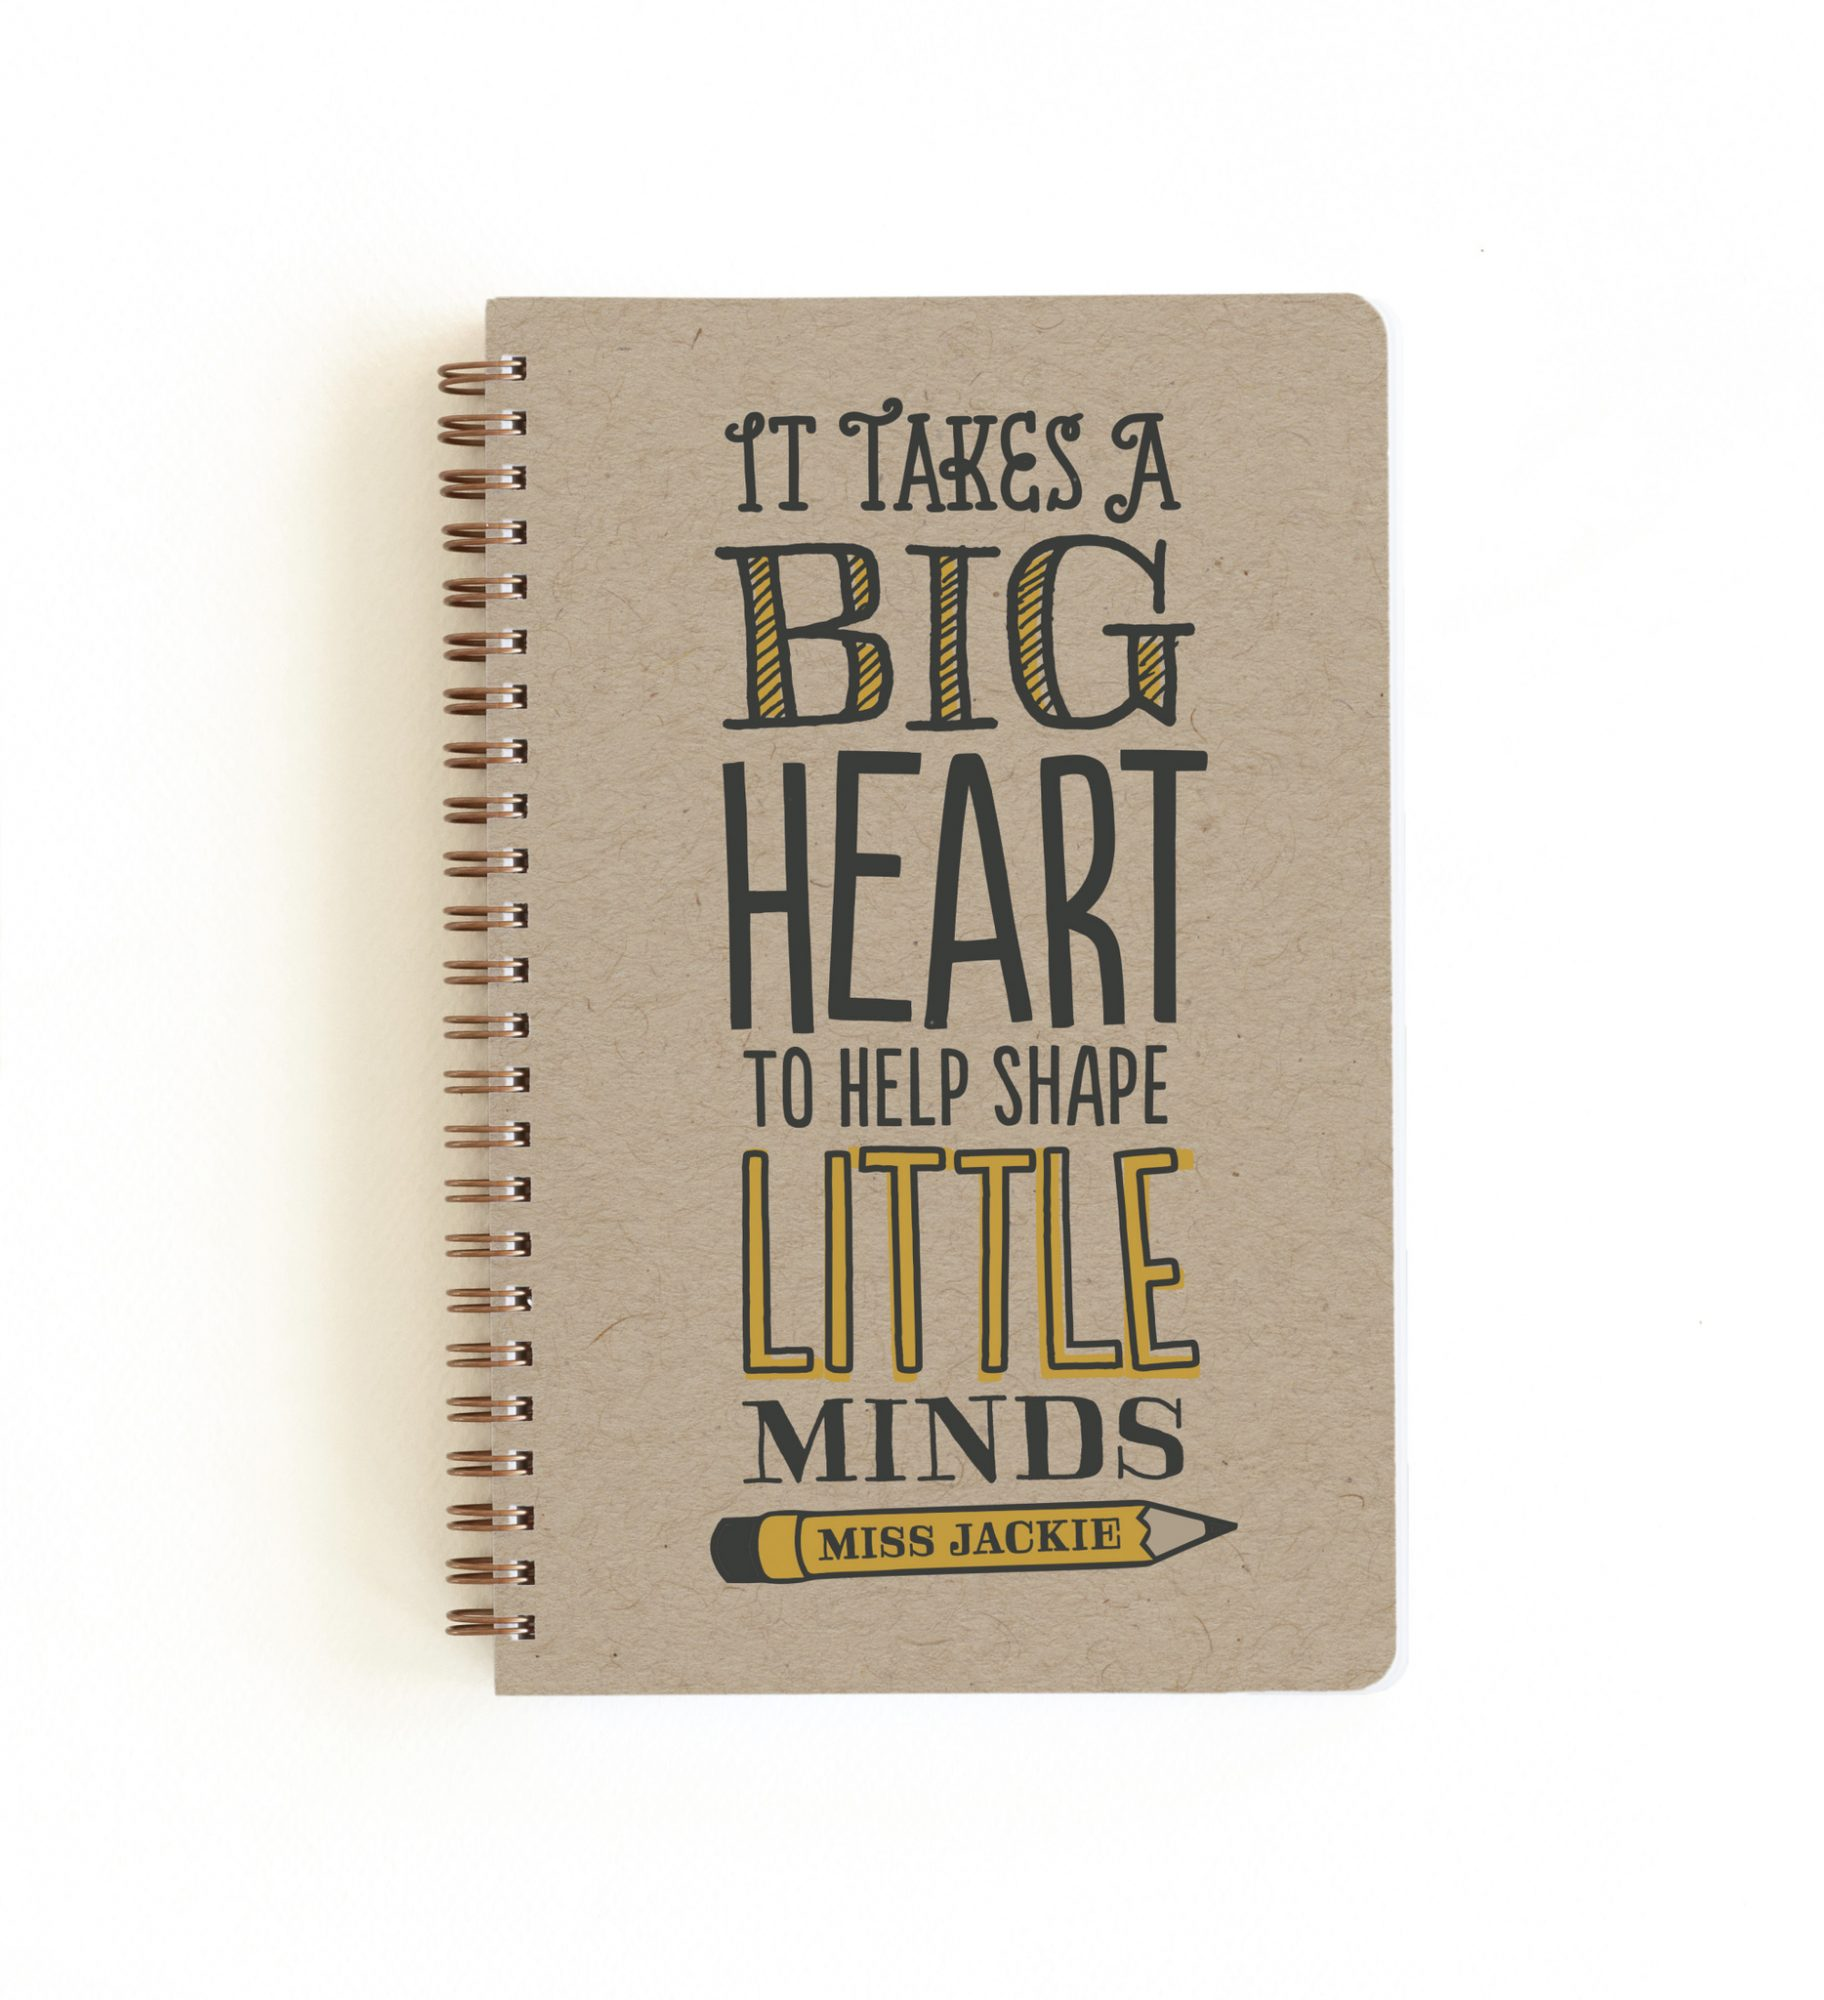 minted. Teacher's Big Heart Notebooks by Jessie Steury, from $16